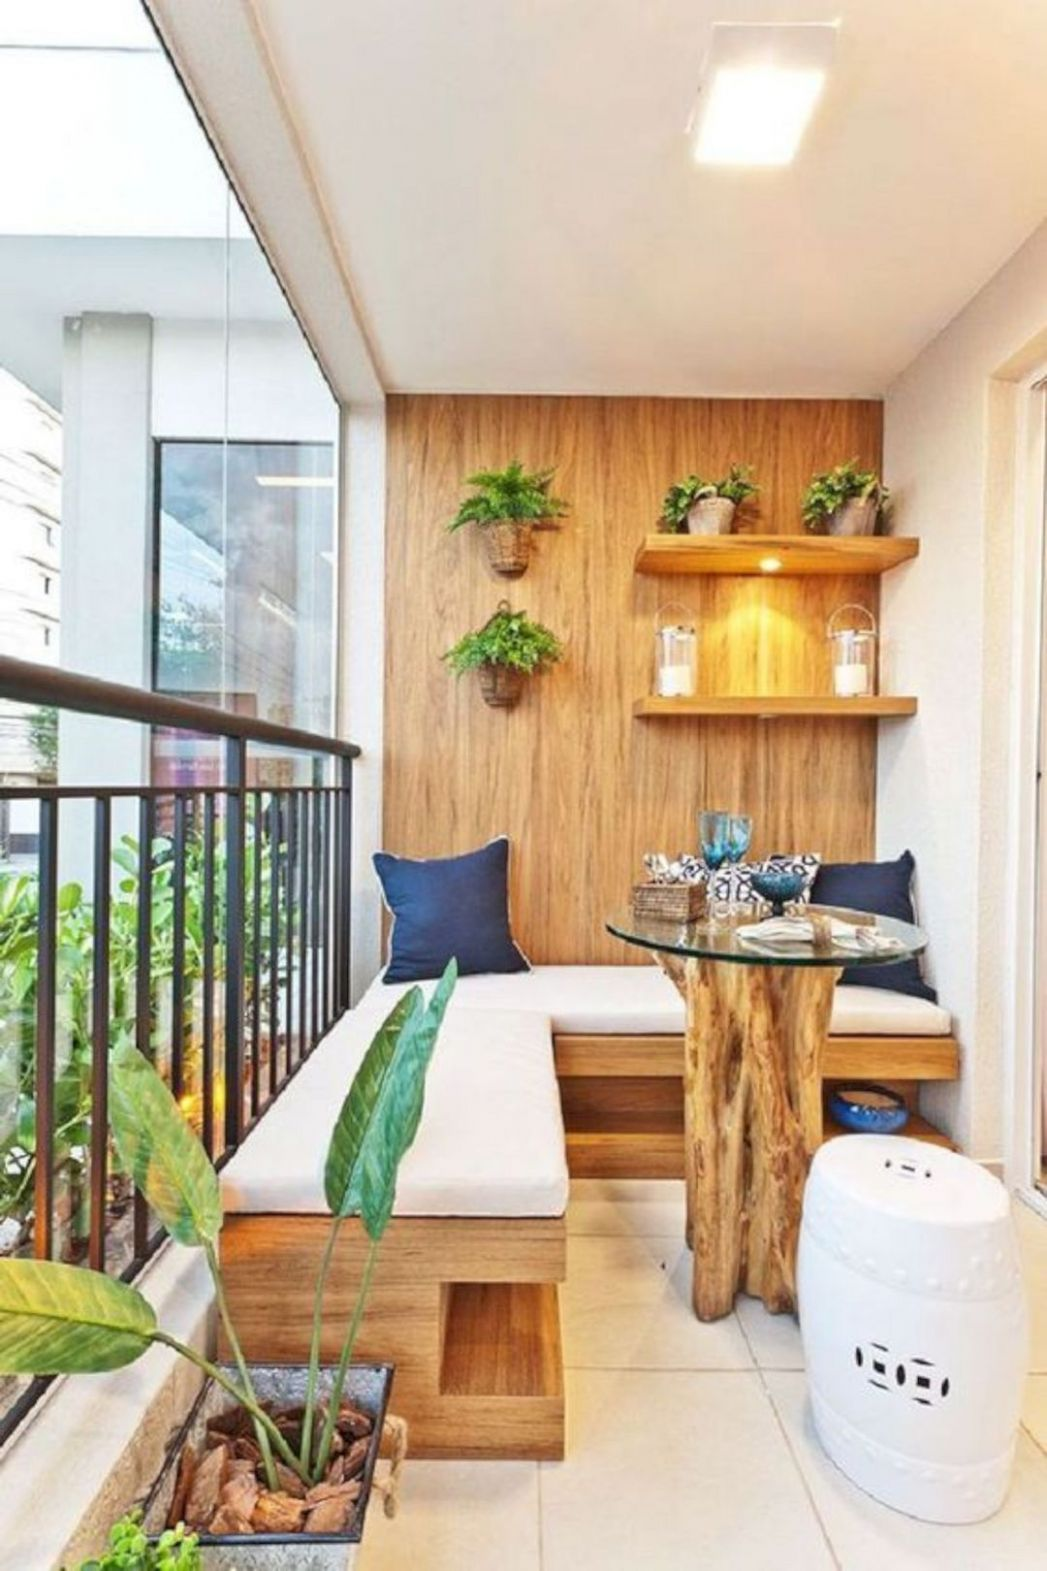 12 Comfy Furniture Ideas to Beautify Your Balcony | Small balcony ..